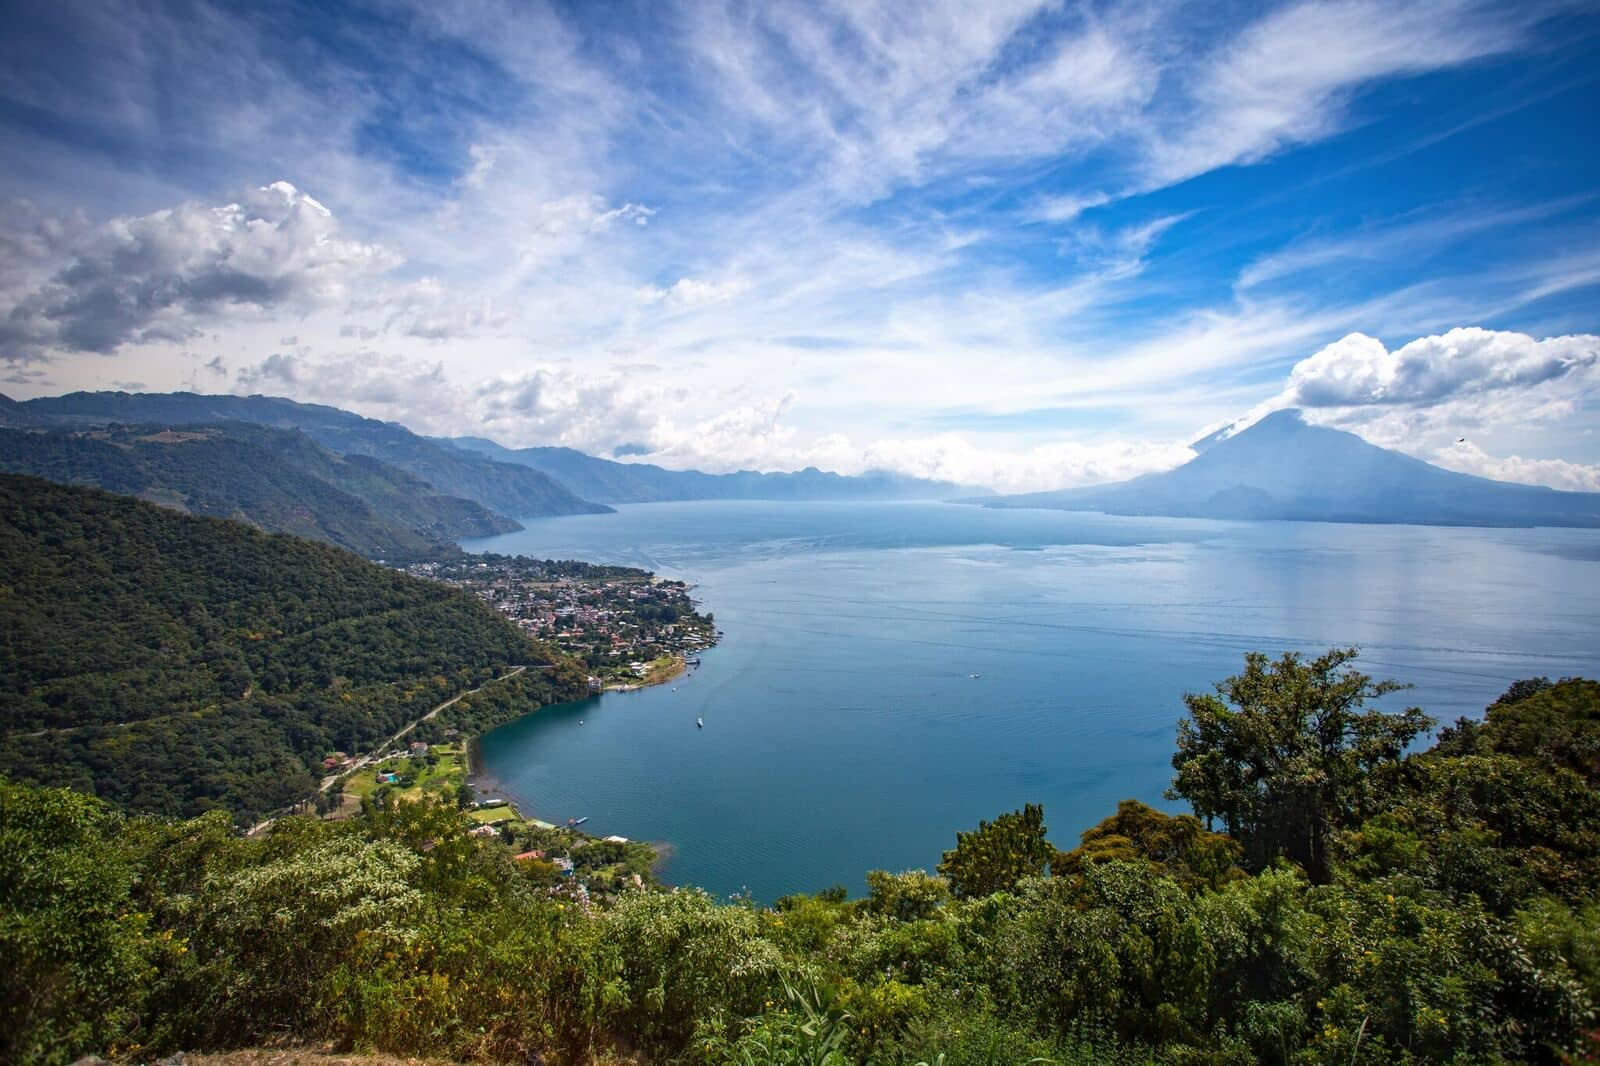 Day 3 – Wednesday: Free day at Atitlan